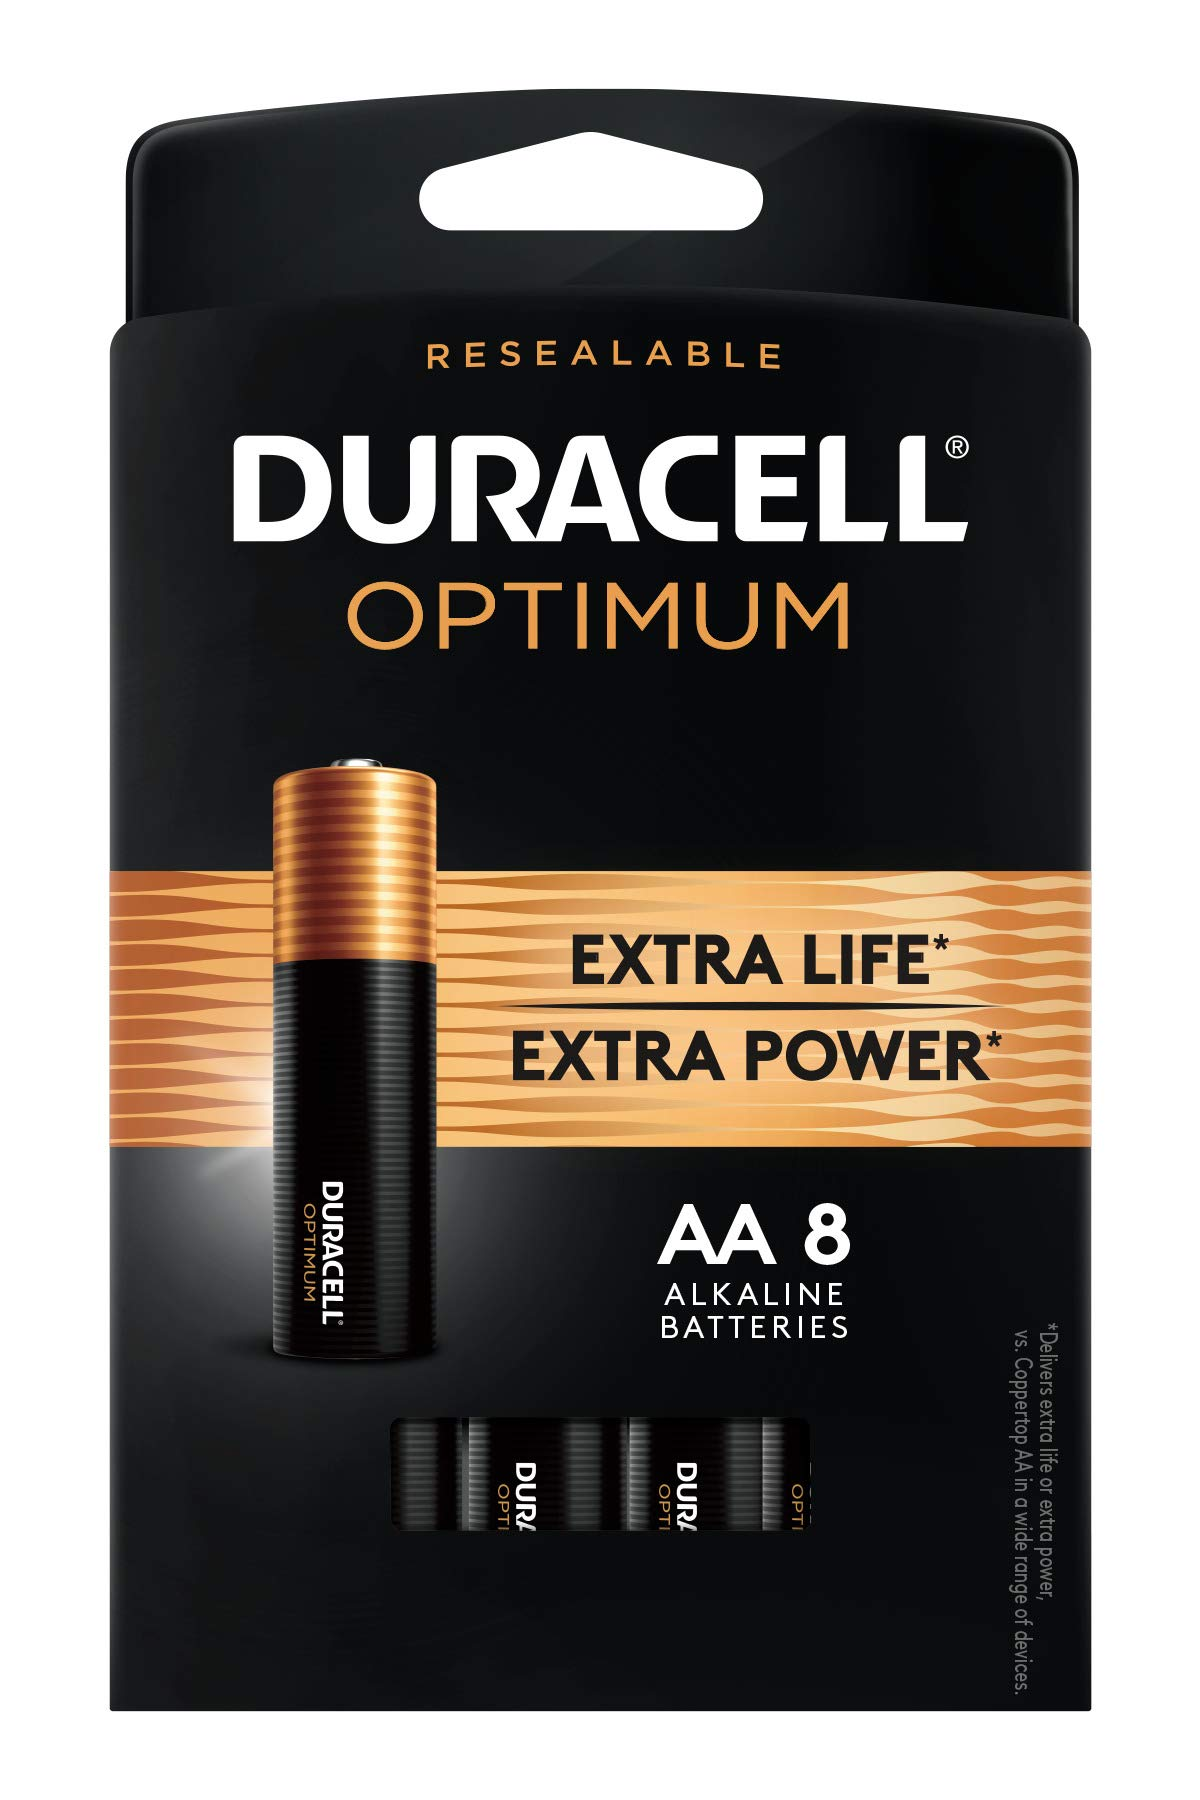 Duracell Optimum AA Batteries | 8 Count | Long Lasting Double A Battery | Alkaline AA Battery